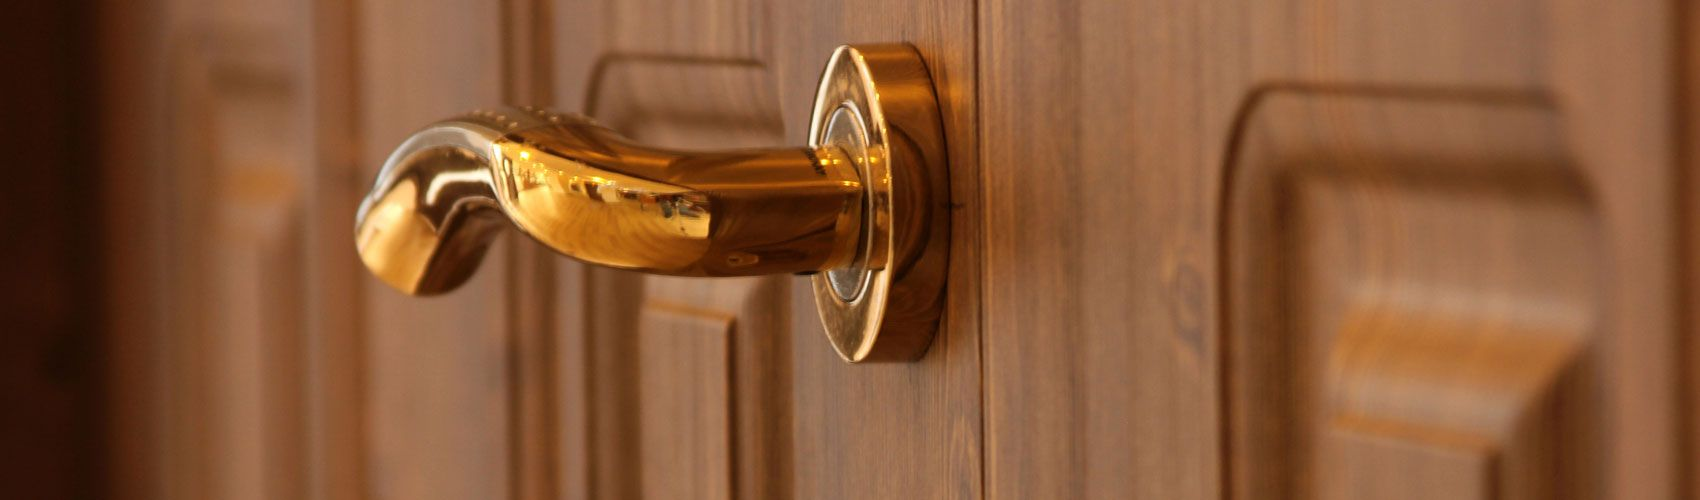 Quality Products at Reasonable Prices | door handle